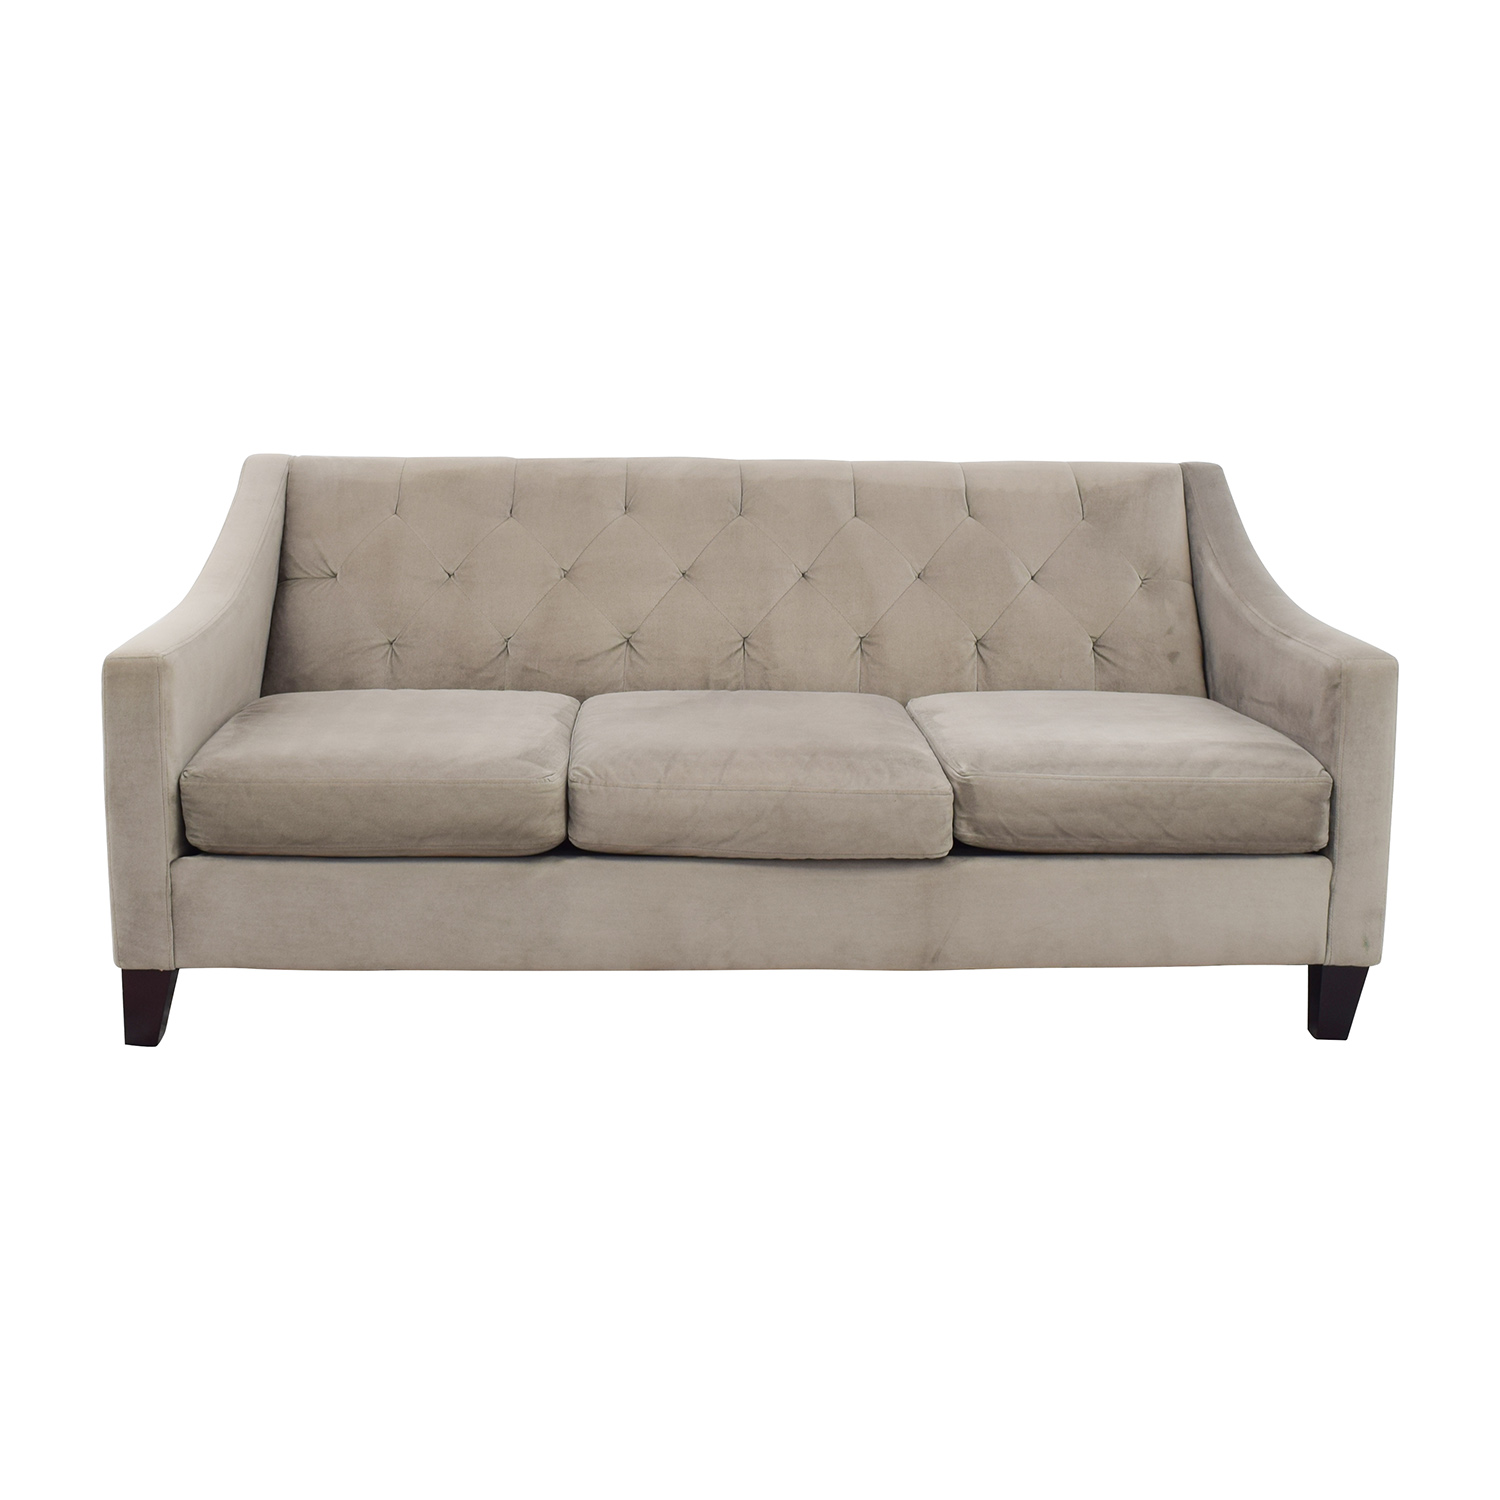 buy Macys Tufted Back Grey Couch Macys Classic Sofas